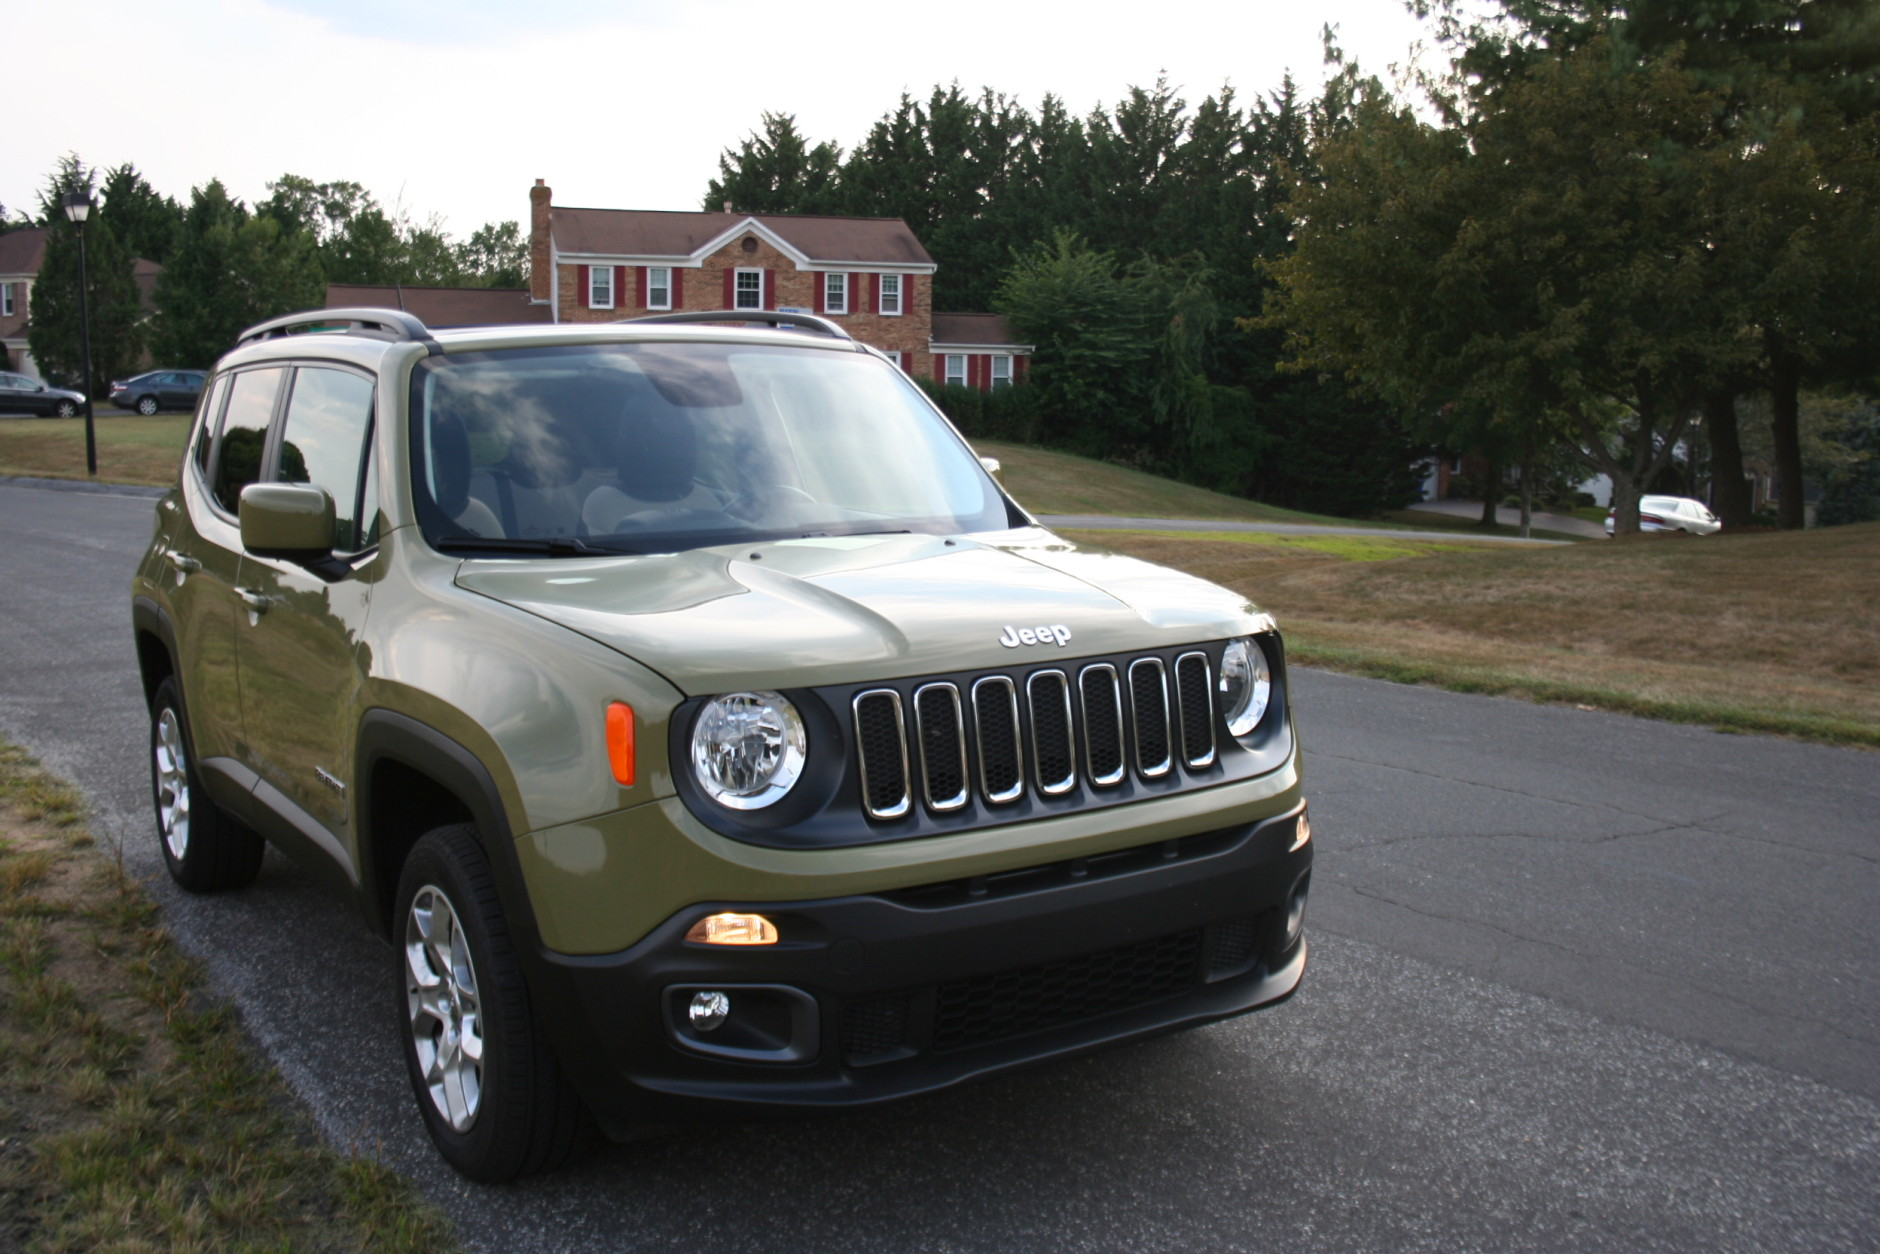 Très 2015 Jeep Renegade: The not-so-cute subcompact crossover | WTOP WV23